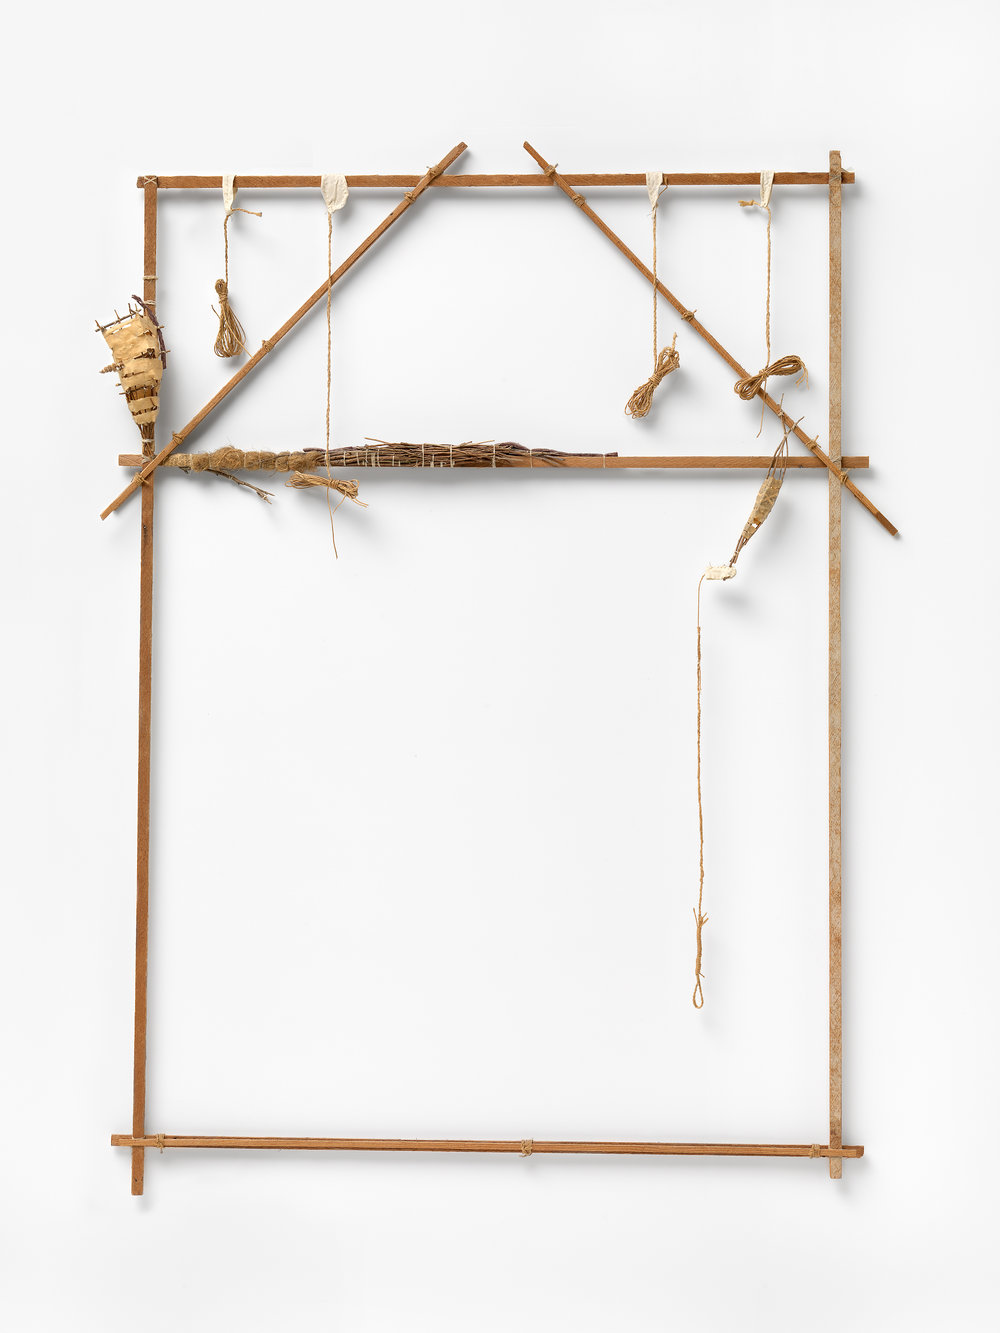 Image: John Davis,  Lean to , 1977, wood, twigs, paper, twine, cotton, underfelt and cloth, 142.8 x 106.4 x 9.7 cm